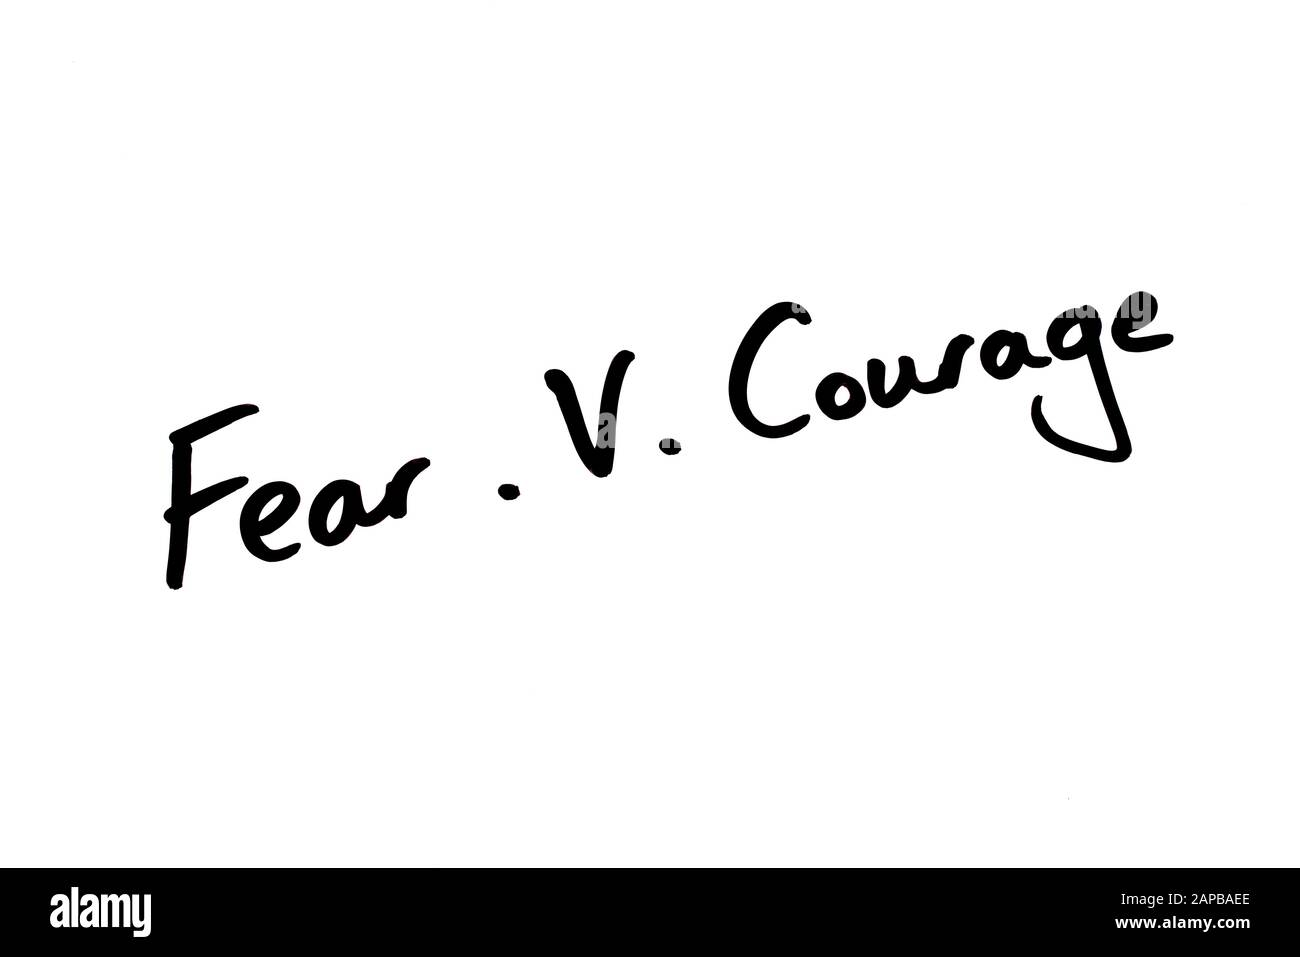 Close-up of Fear .v. Courage handwritten on a white background. Stock Photo